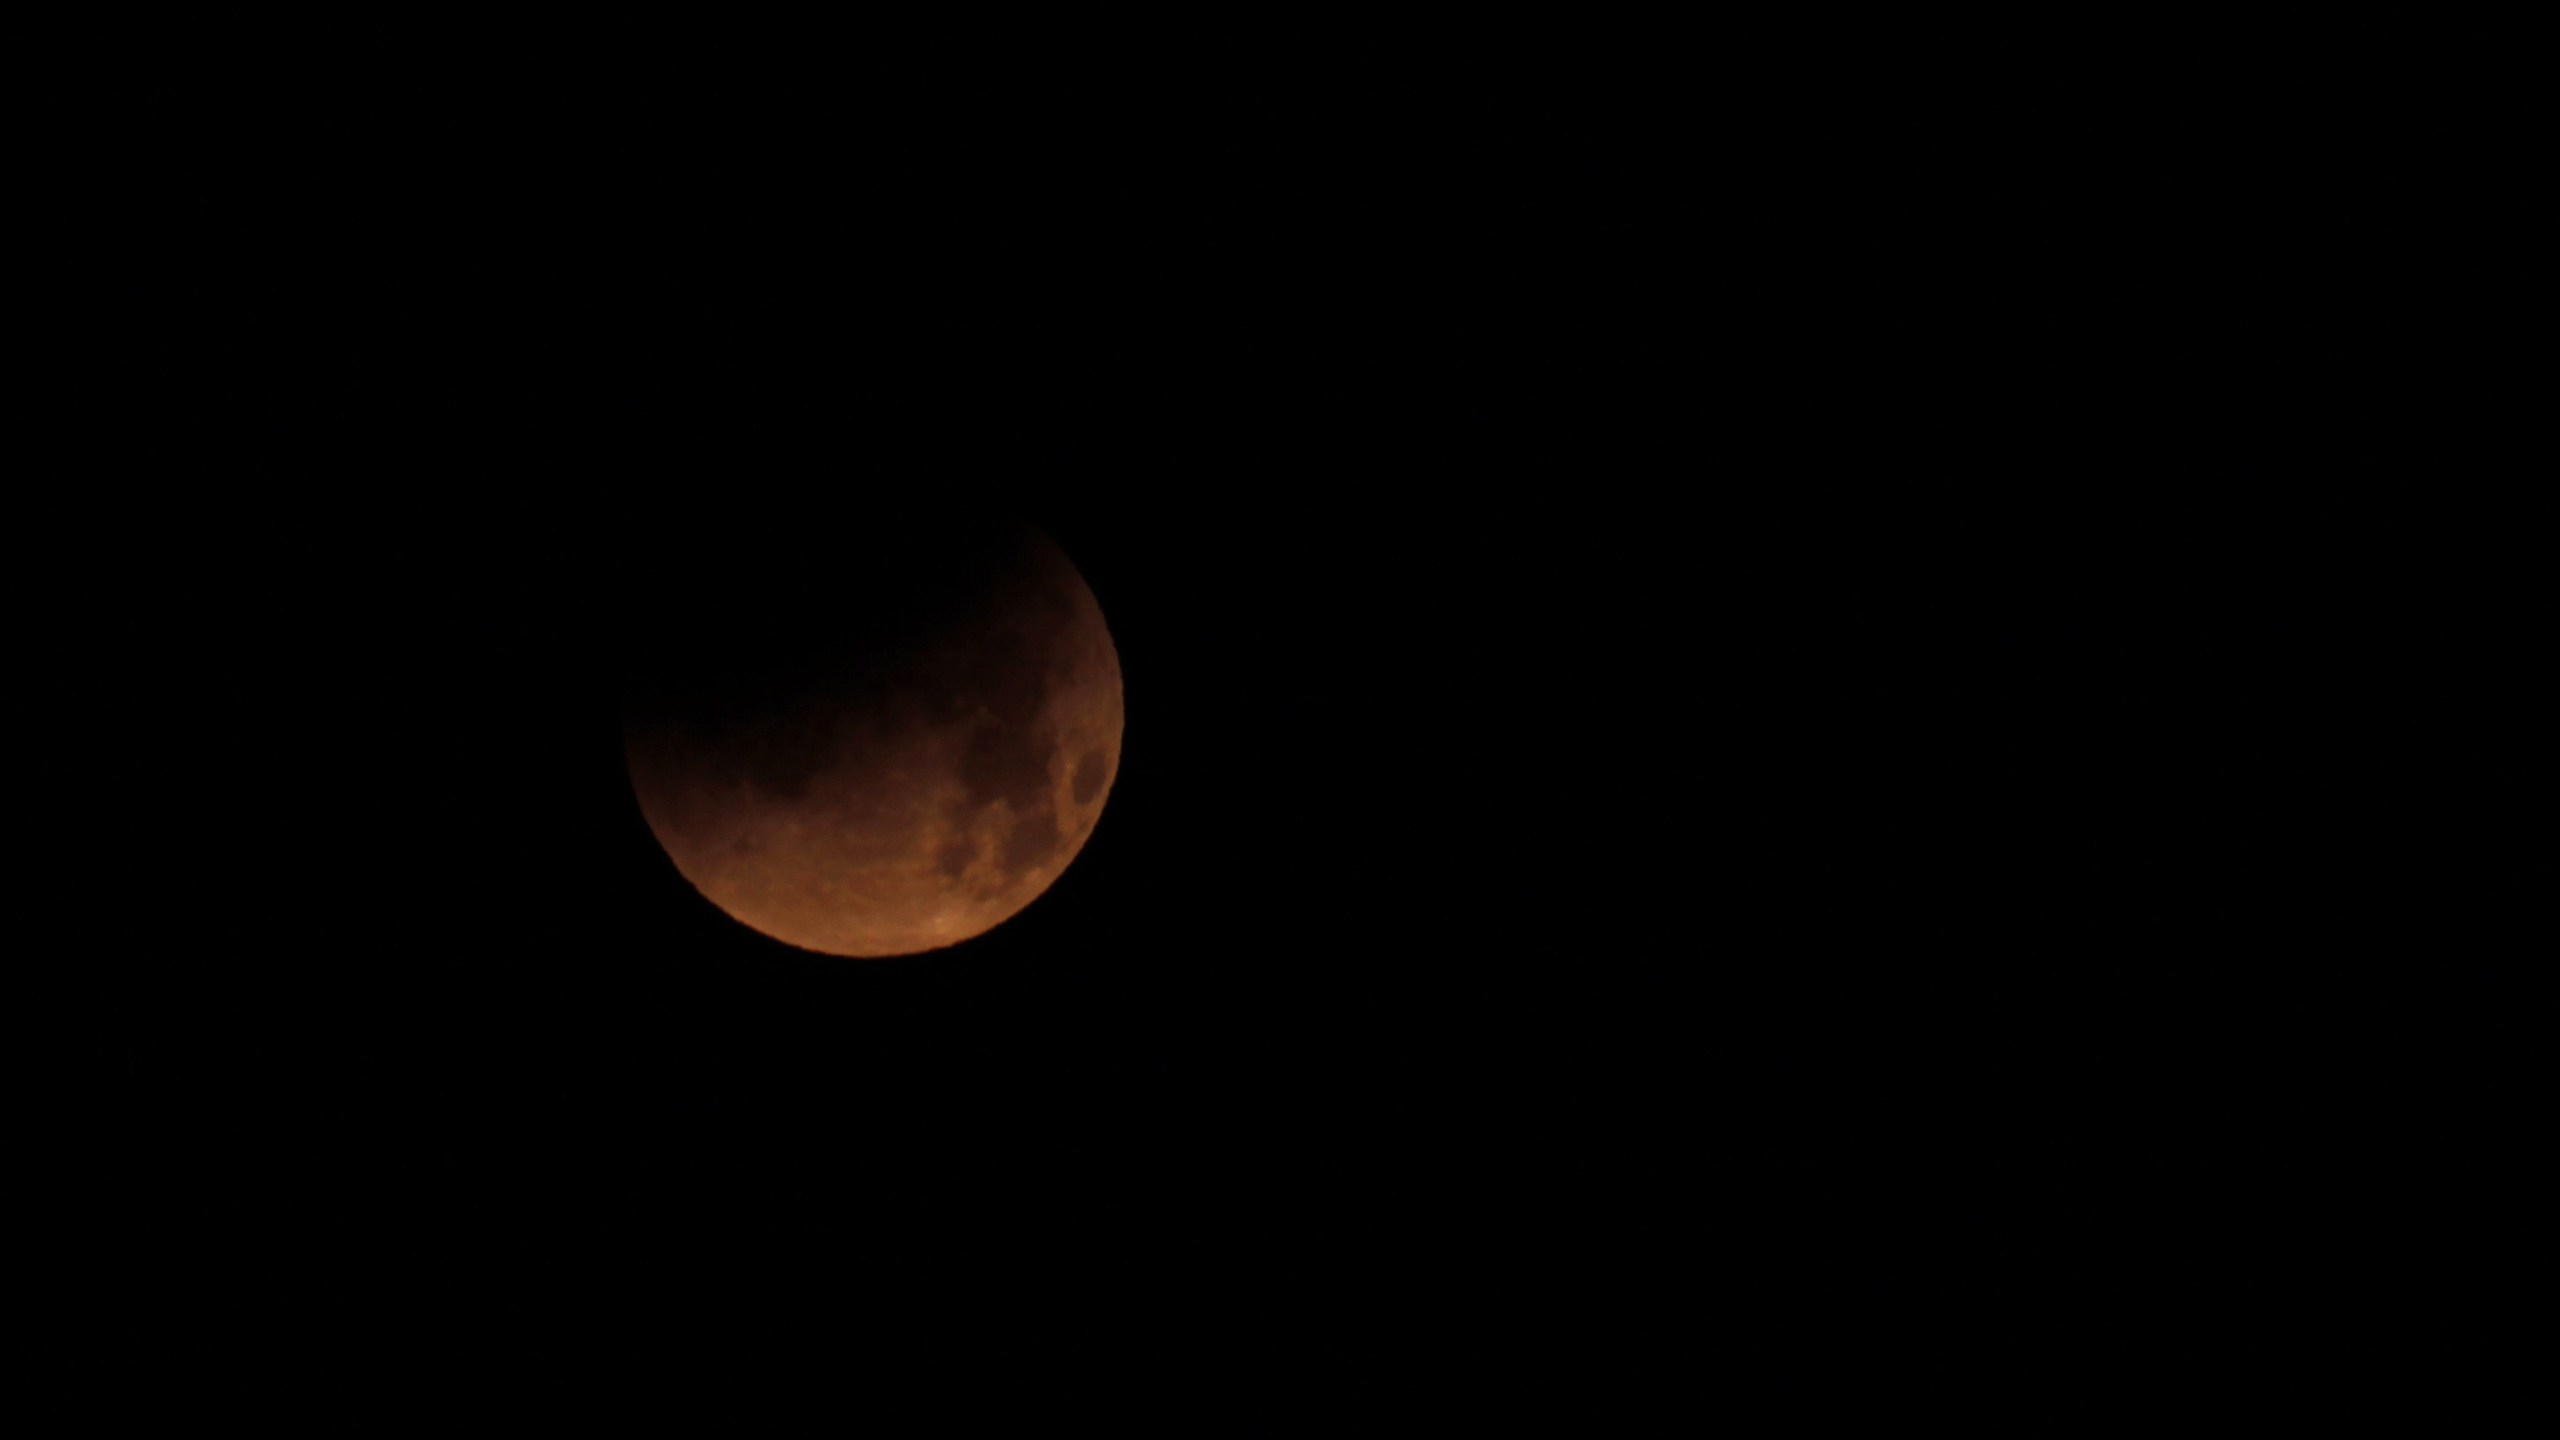 SPAIN-ASTRONOMY-ECLIPSE-MOON